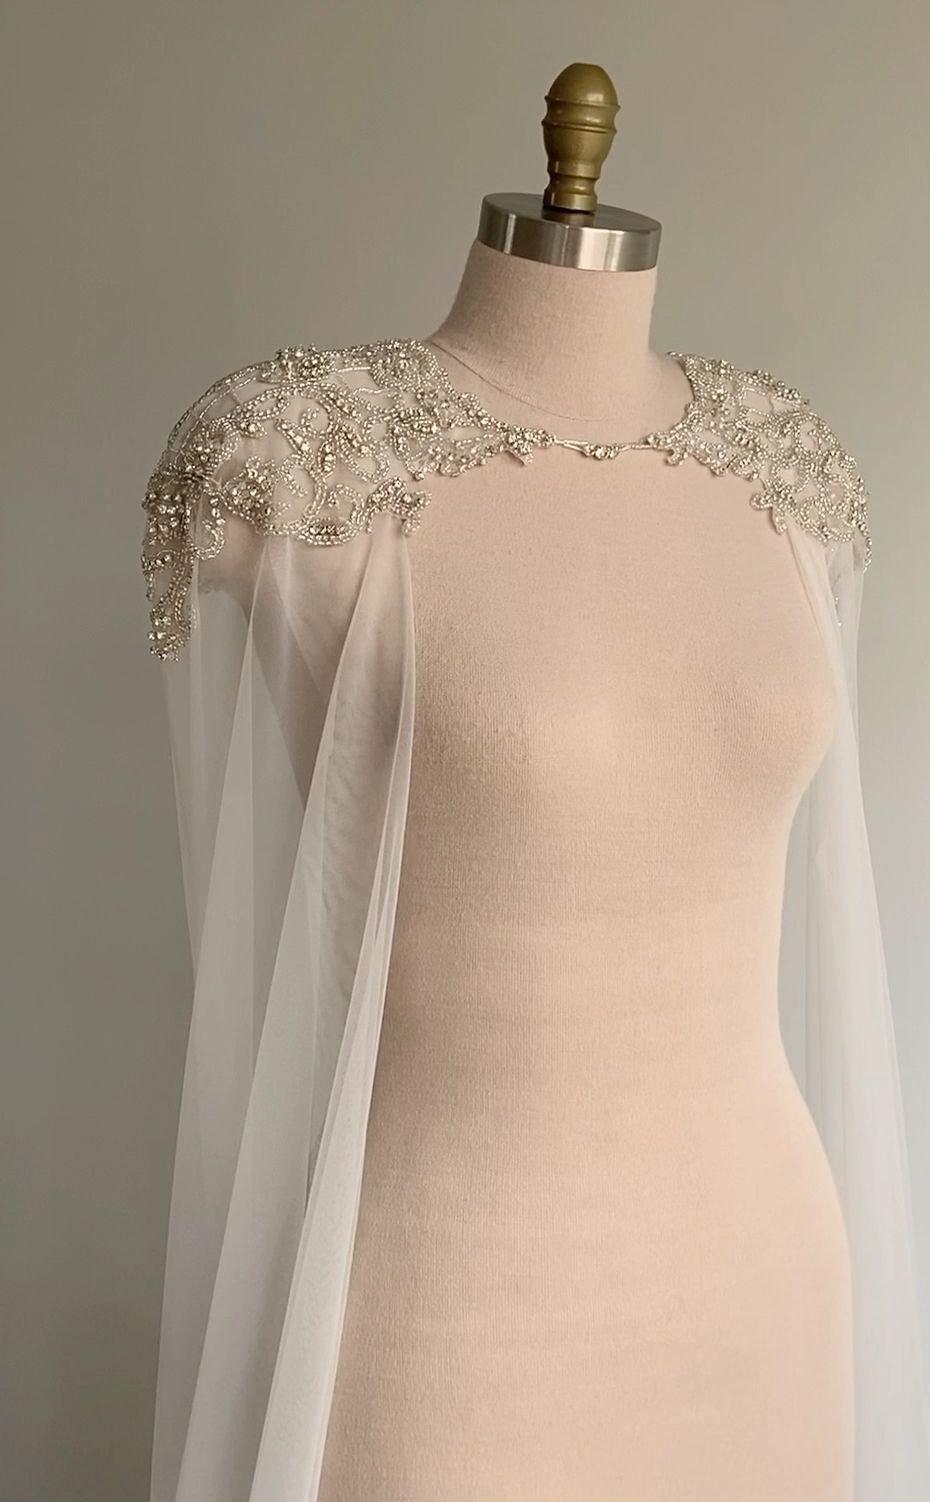 Wedding Dresses Capes Tops Skirts and Veils by Lil